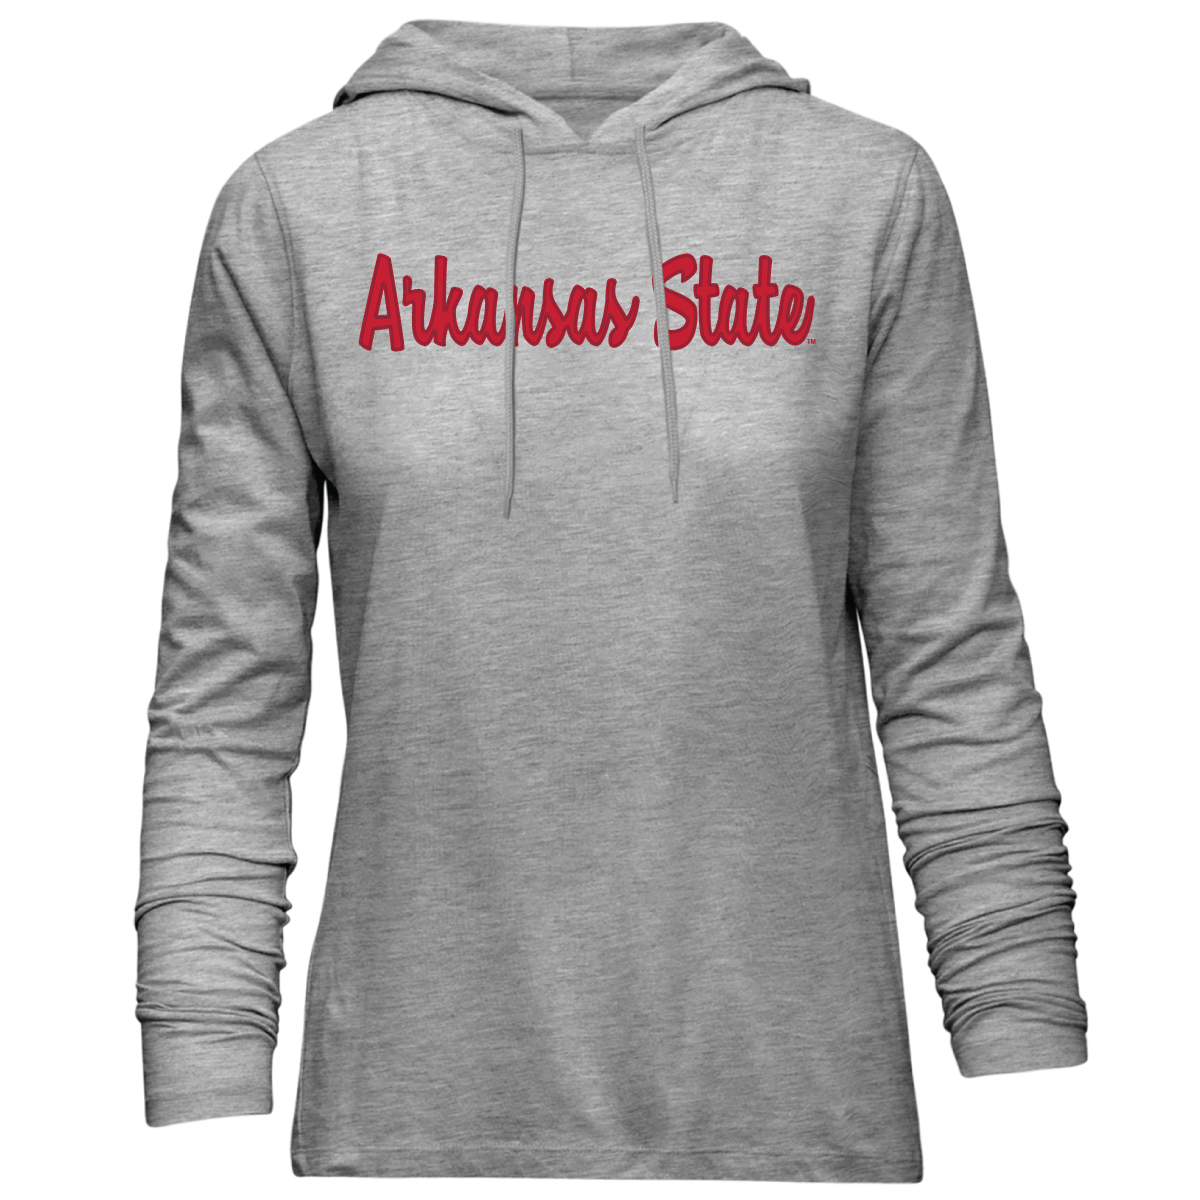 Arkansas State Heart Throb Pullover Hoody